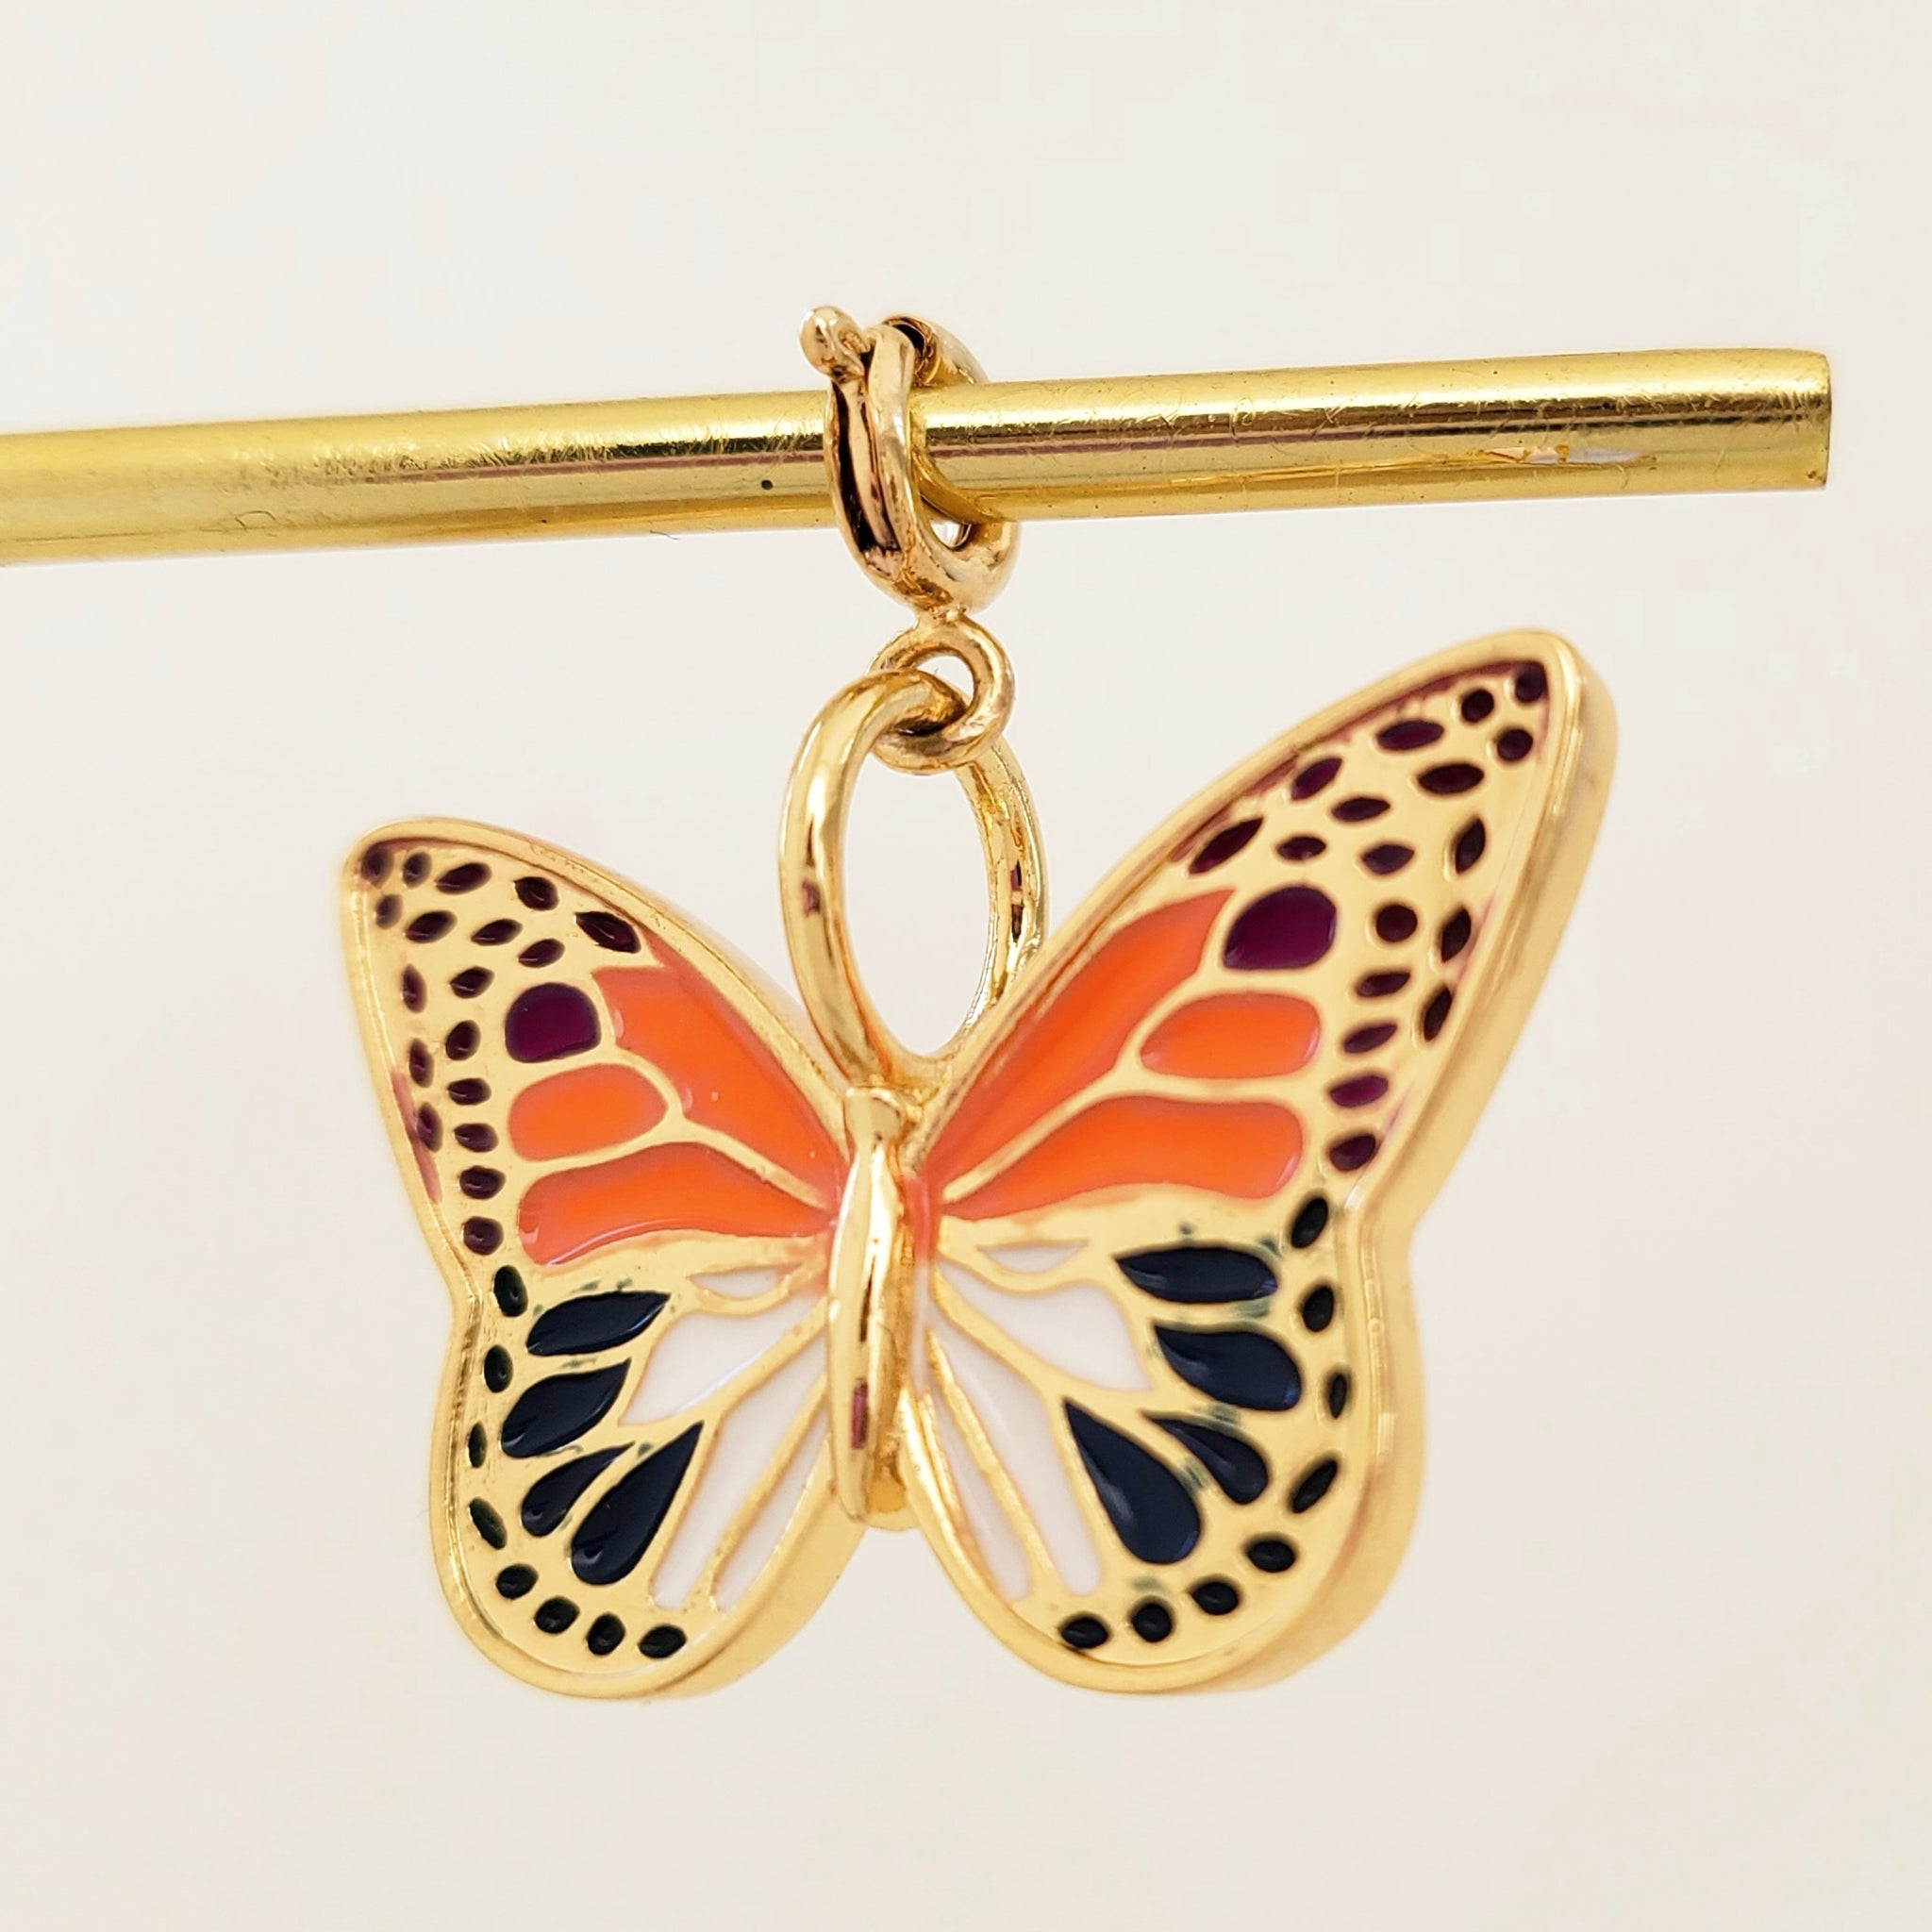 NEW ! Charm Big Butterfly1